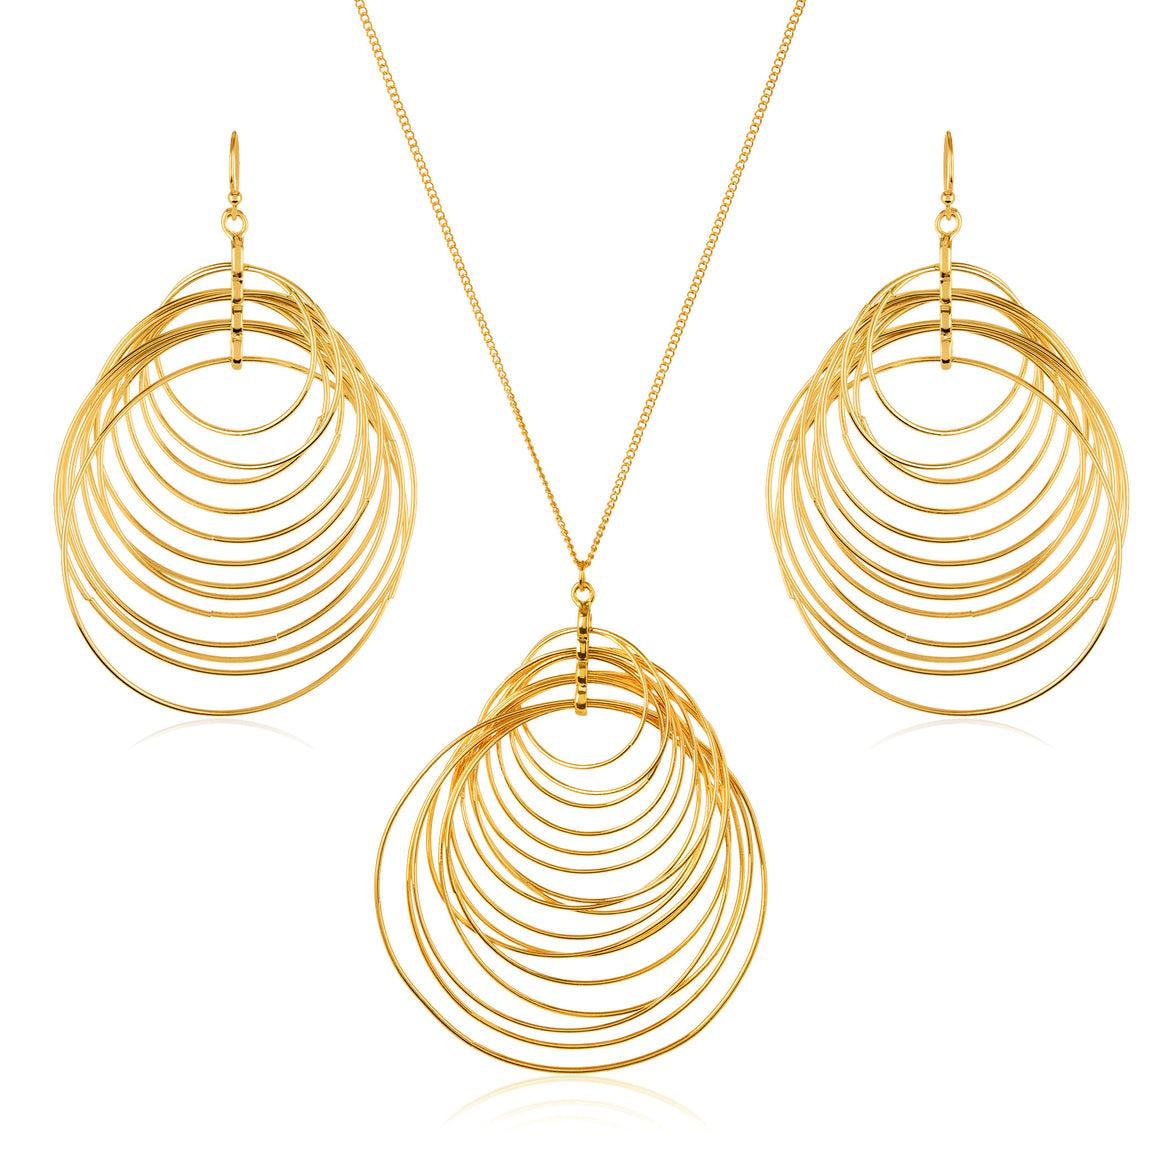 ELYA Women's Goldtone Crescent Circles Necklace and Earrings Jewelry Set